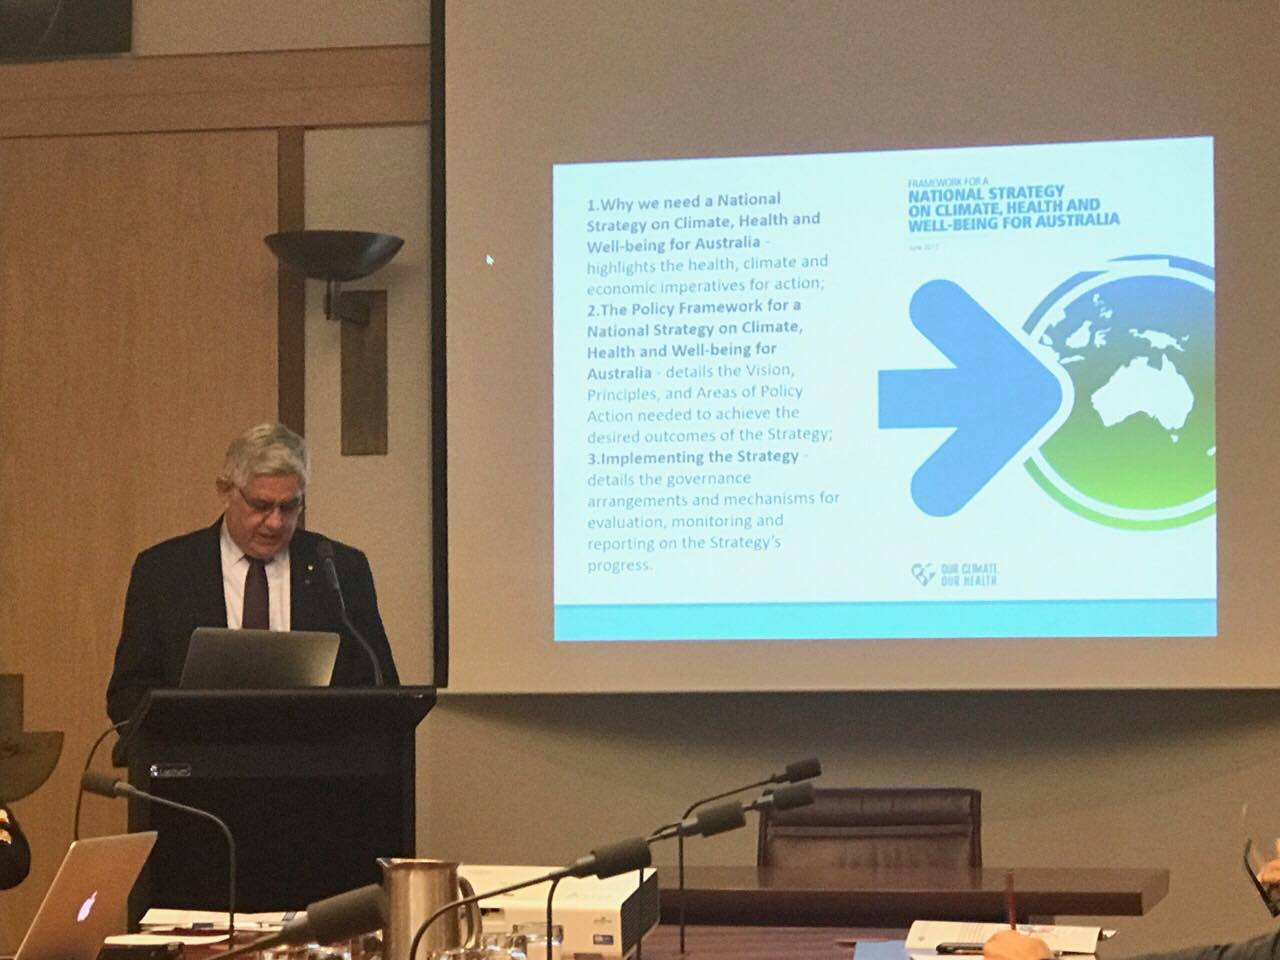 Minister for Aged Care & Indigenous Health, The Hon @KenWyattMP AM, speaking at the @healthy_climate #climatehealthstrategy launch today! https://t.co/hmsU82f3iL